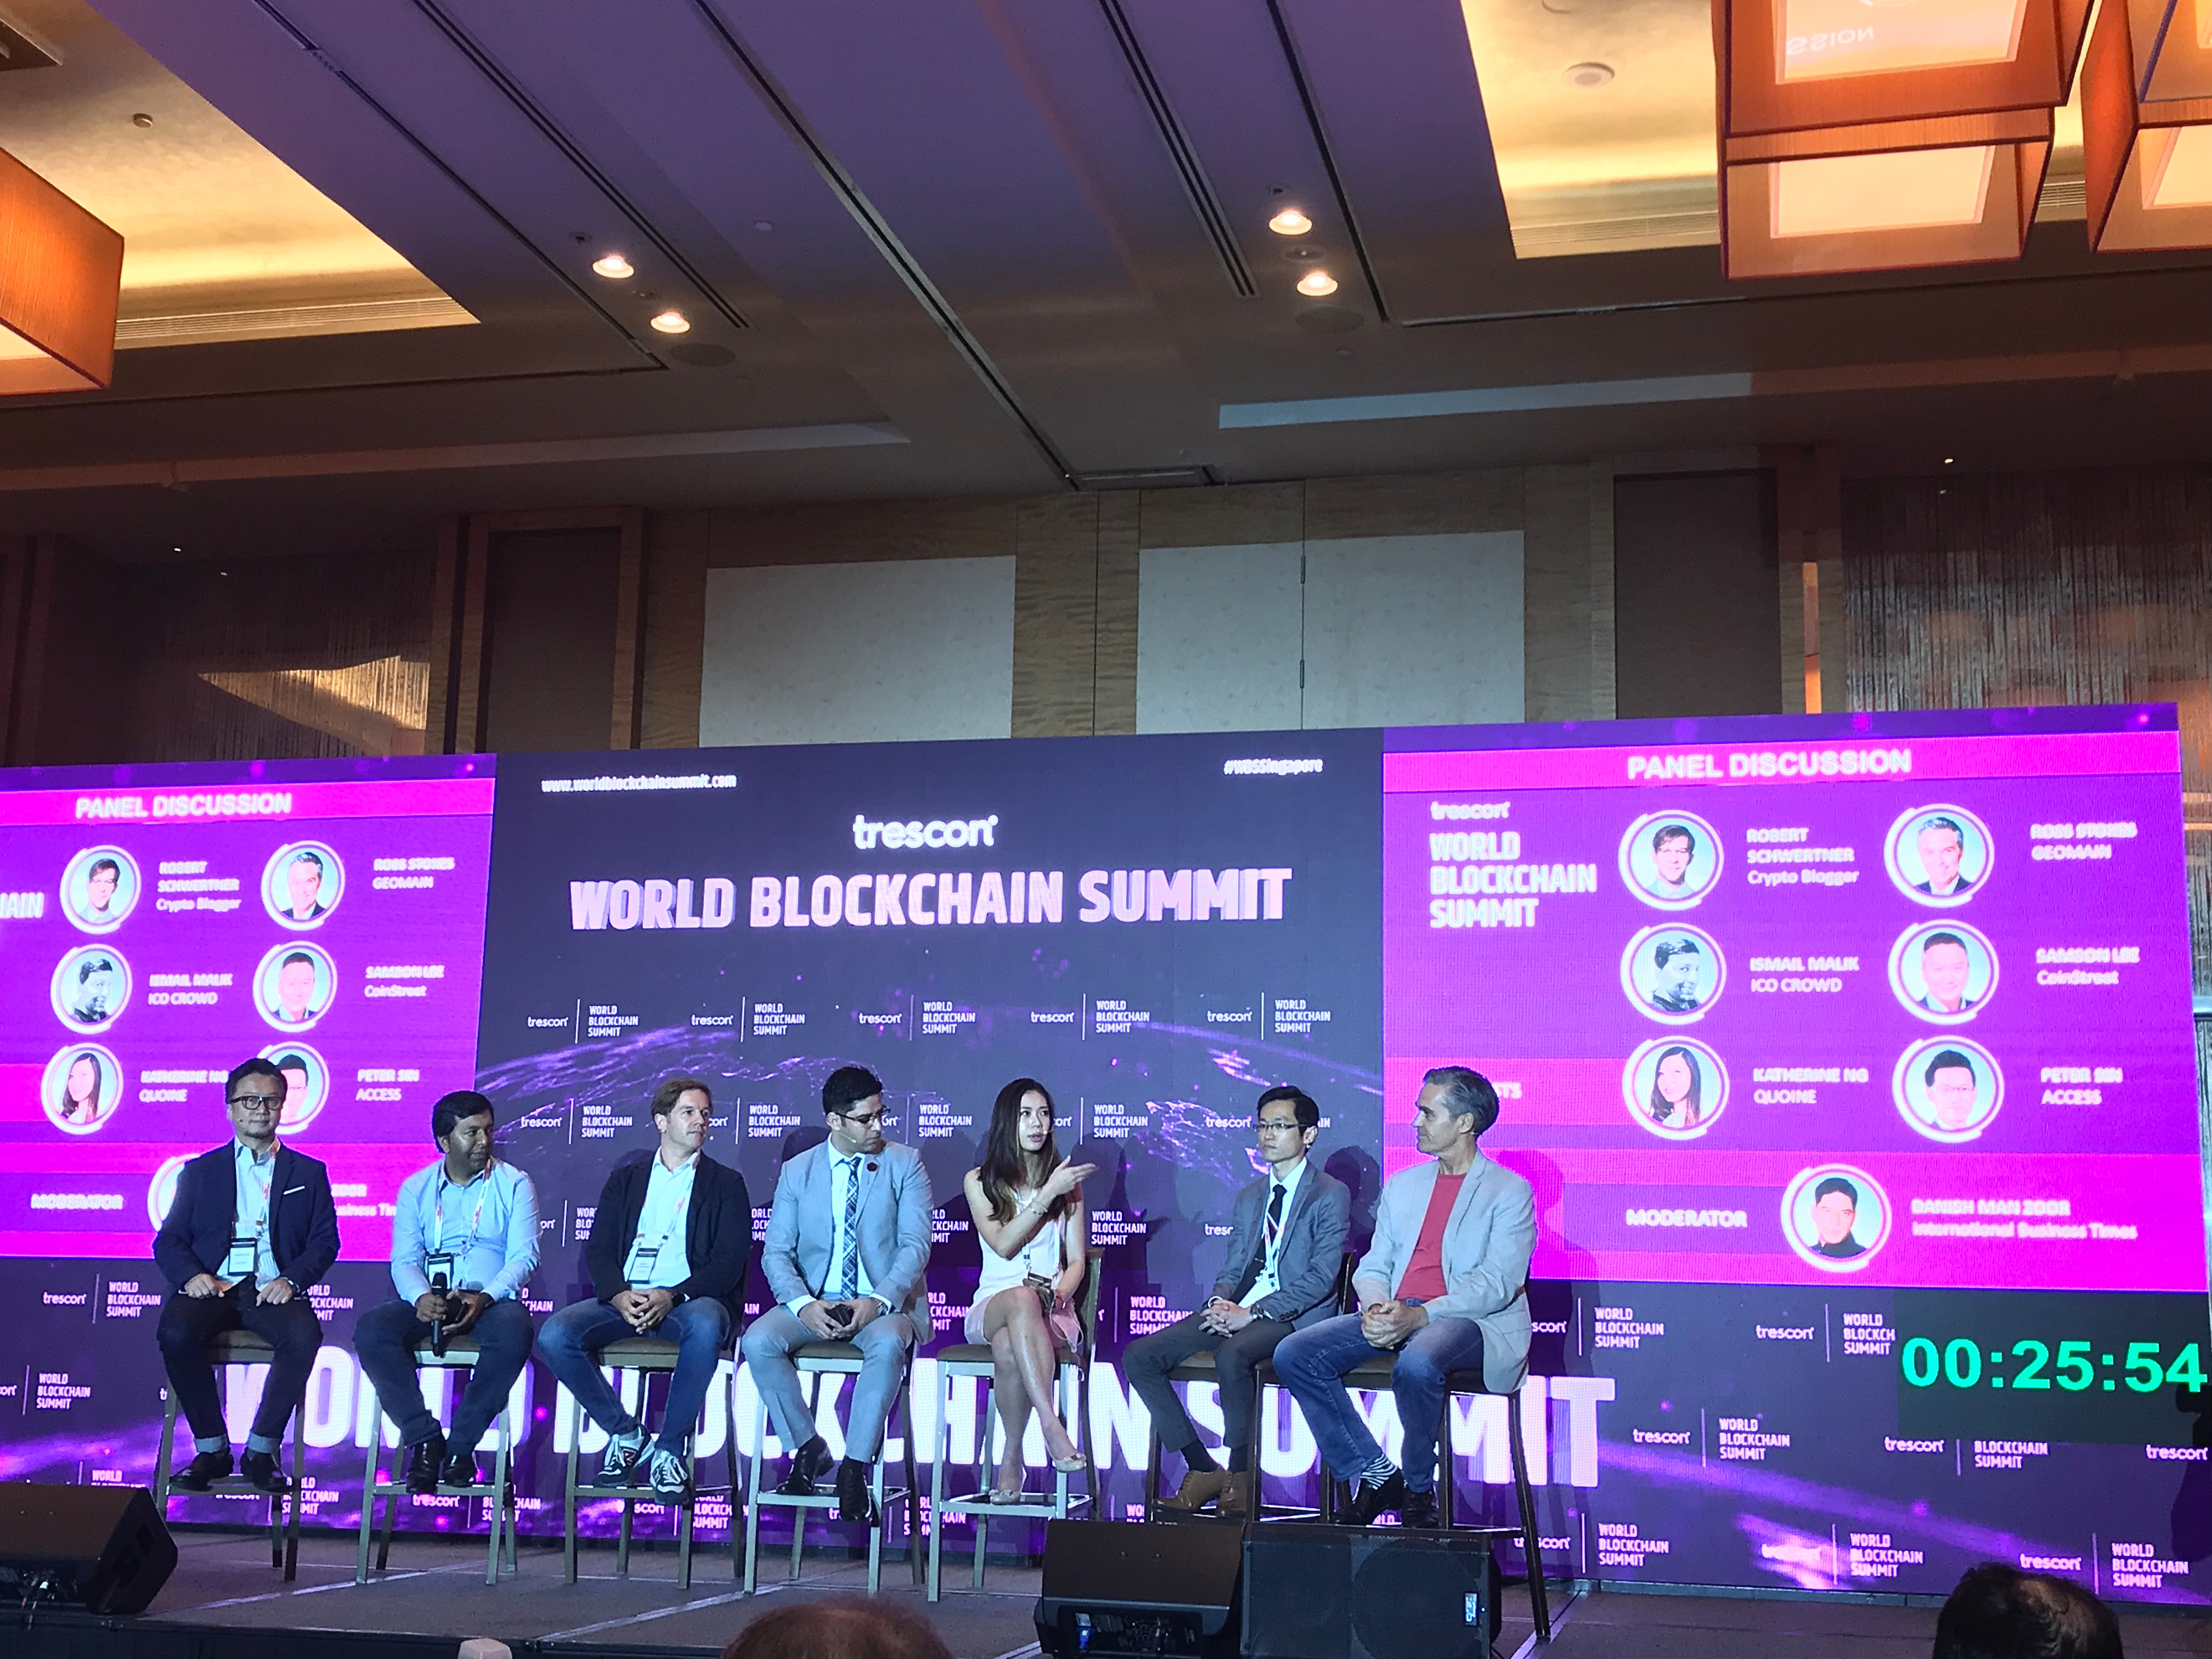 Liquid Head of Marketing Kat Ng discussed crypto at the World Blockchain Summit